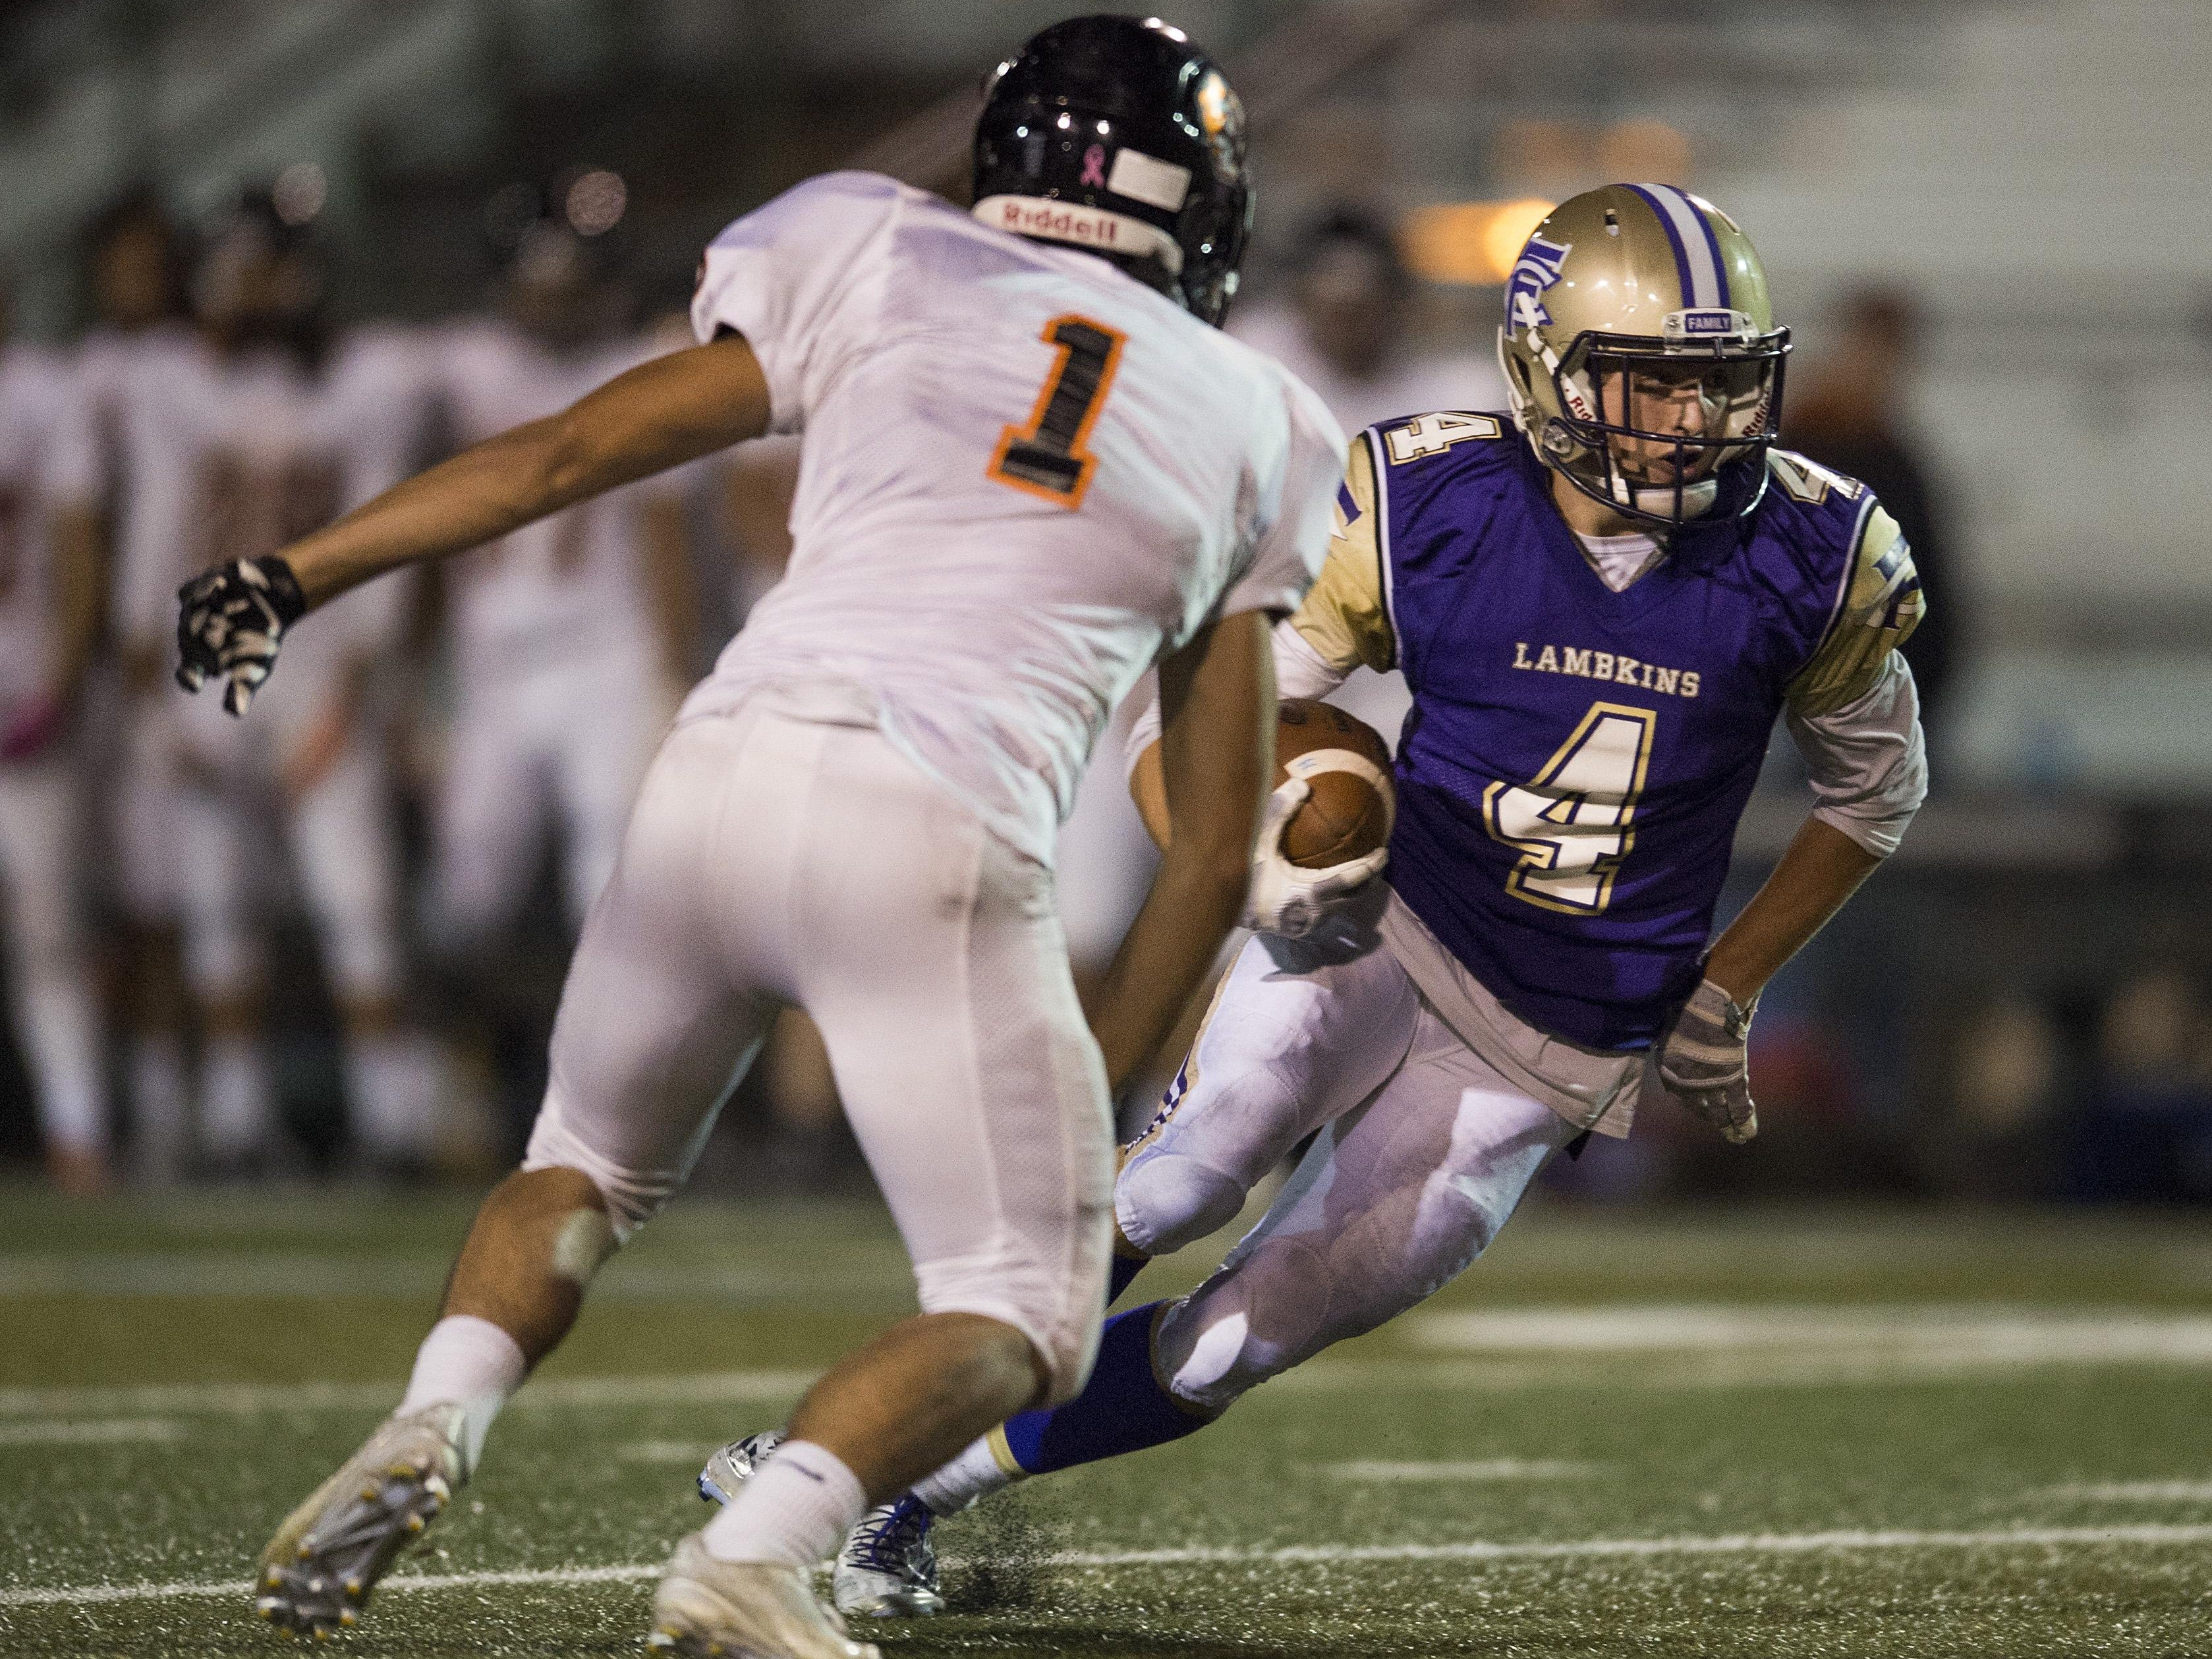 Kielar Harpham of Fort Collins High School leads all area football players in receiving yards.